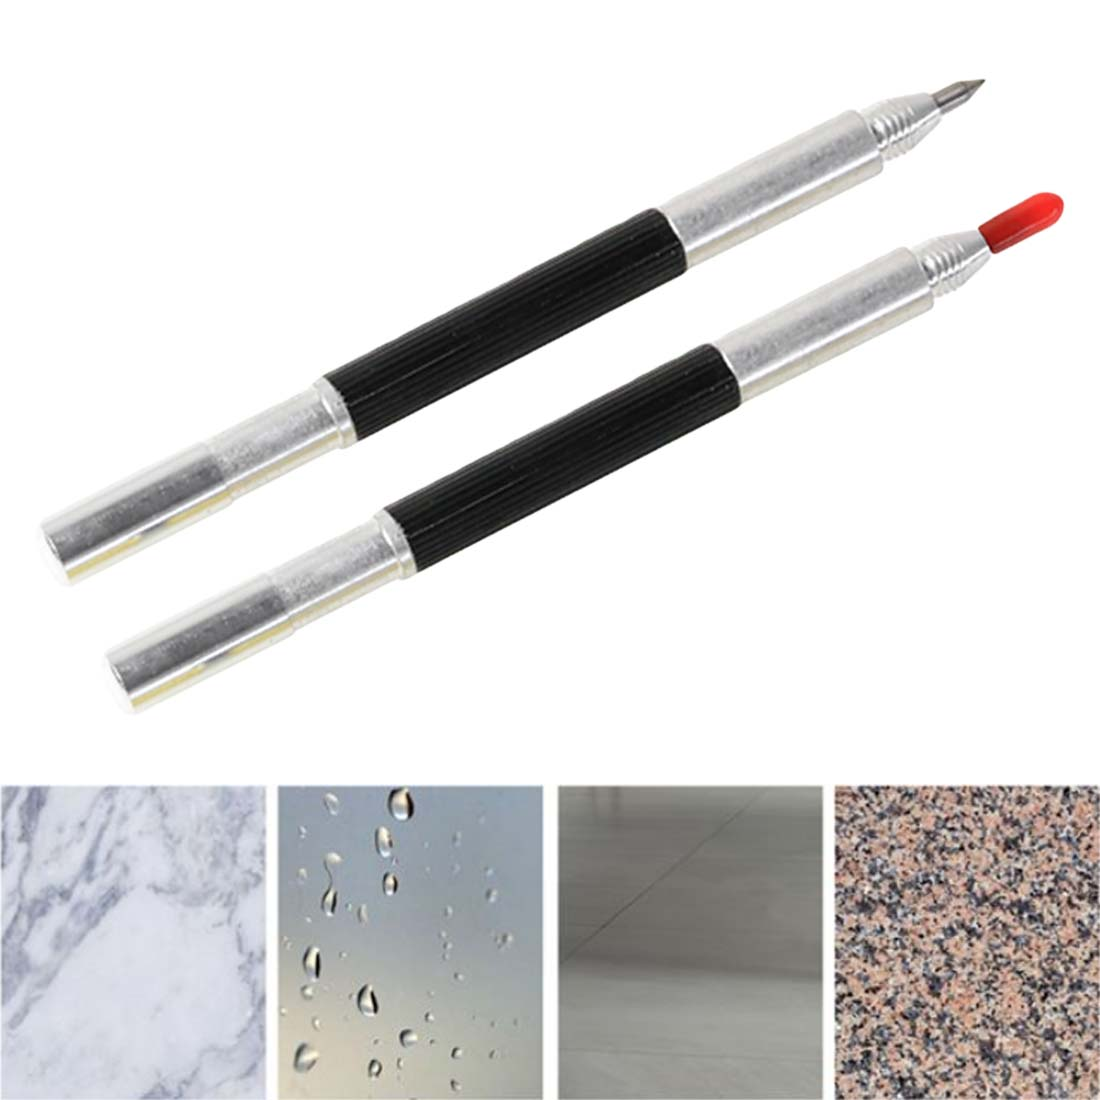 Handle Tipped Glass Tile Cutter Carbide Scriber Hard Metal Tile Cutting Machine Lettering Pen Engraver Glass Knife Scriber